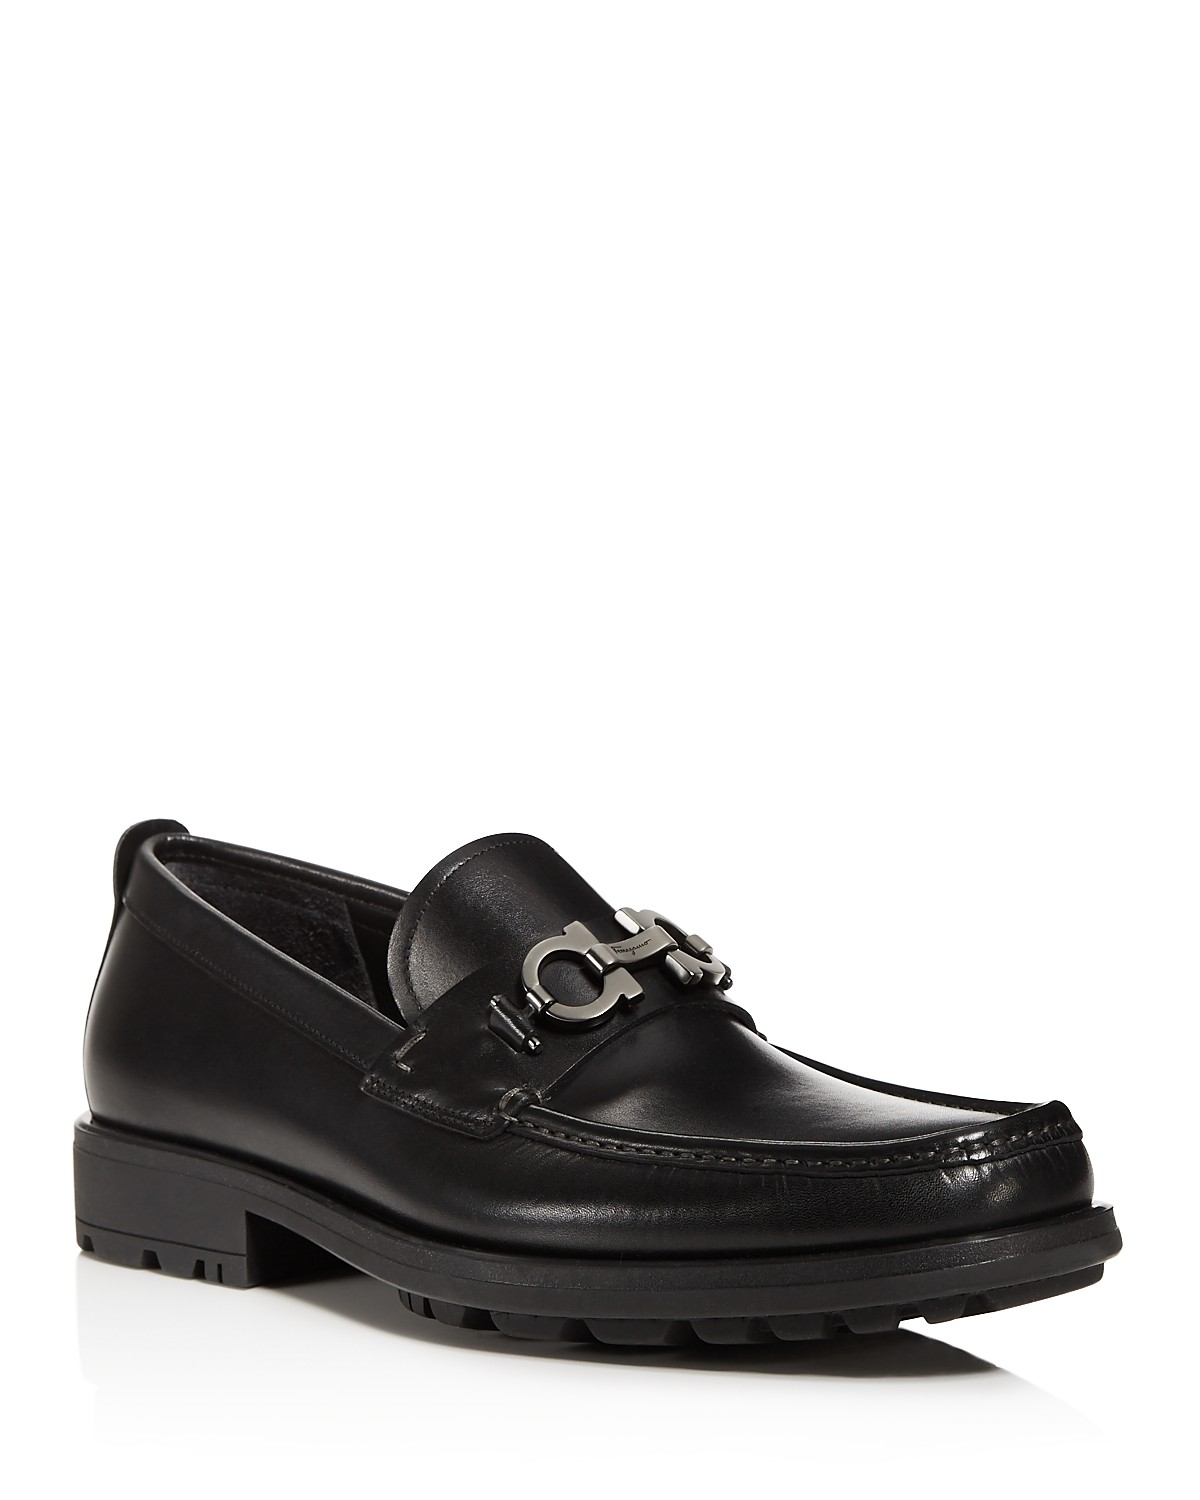 Salvatore FerragamoMen's David Double Gancini Bit Thick Lug Leather Loafers YnTjMTrbp